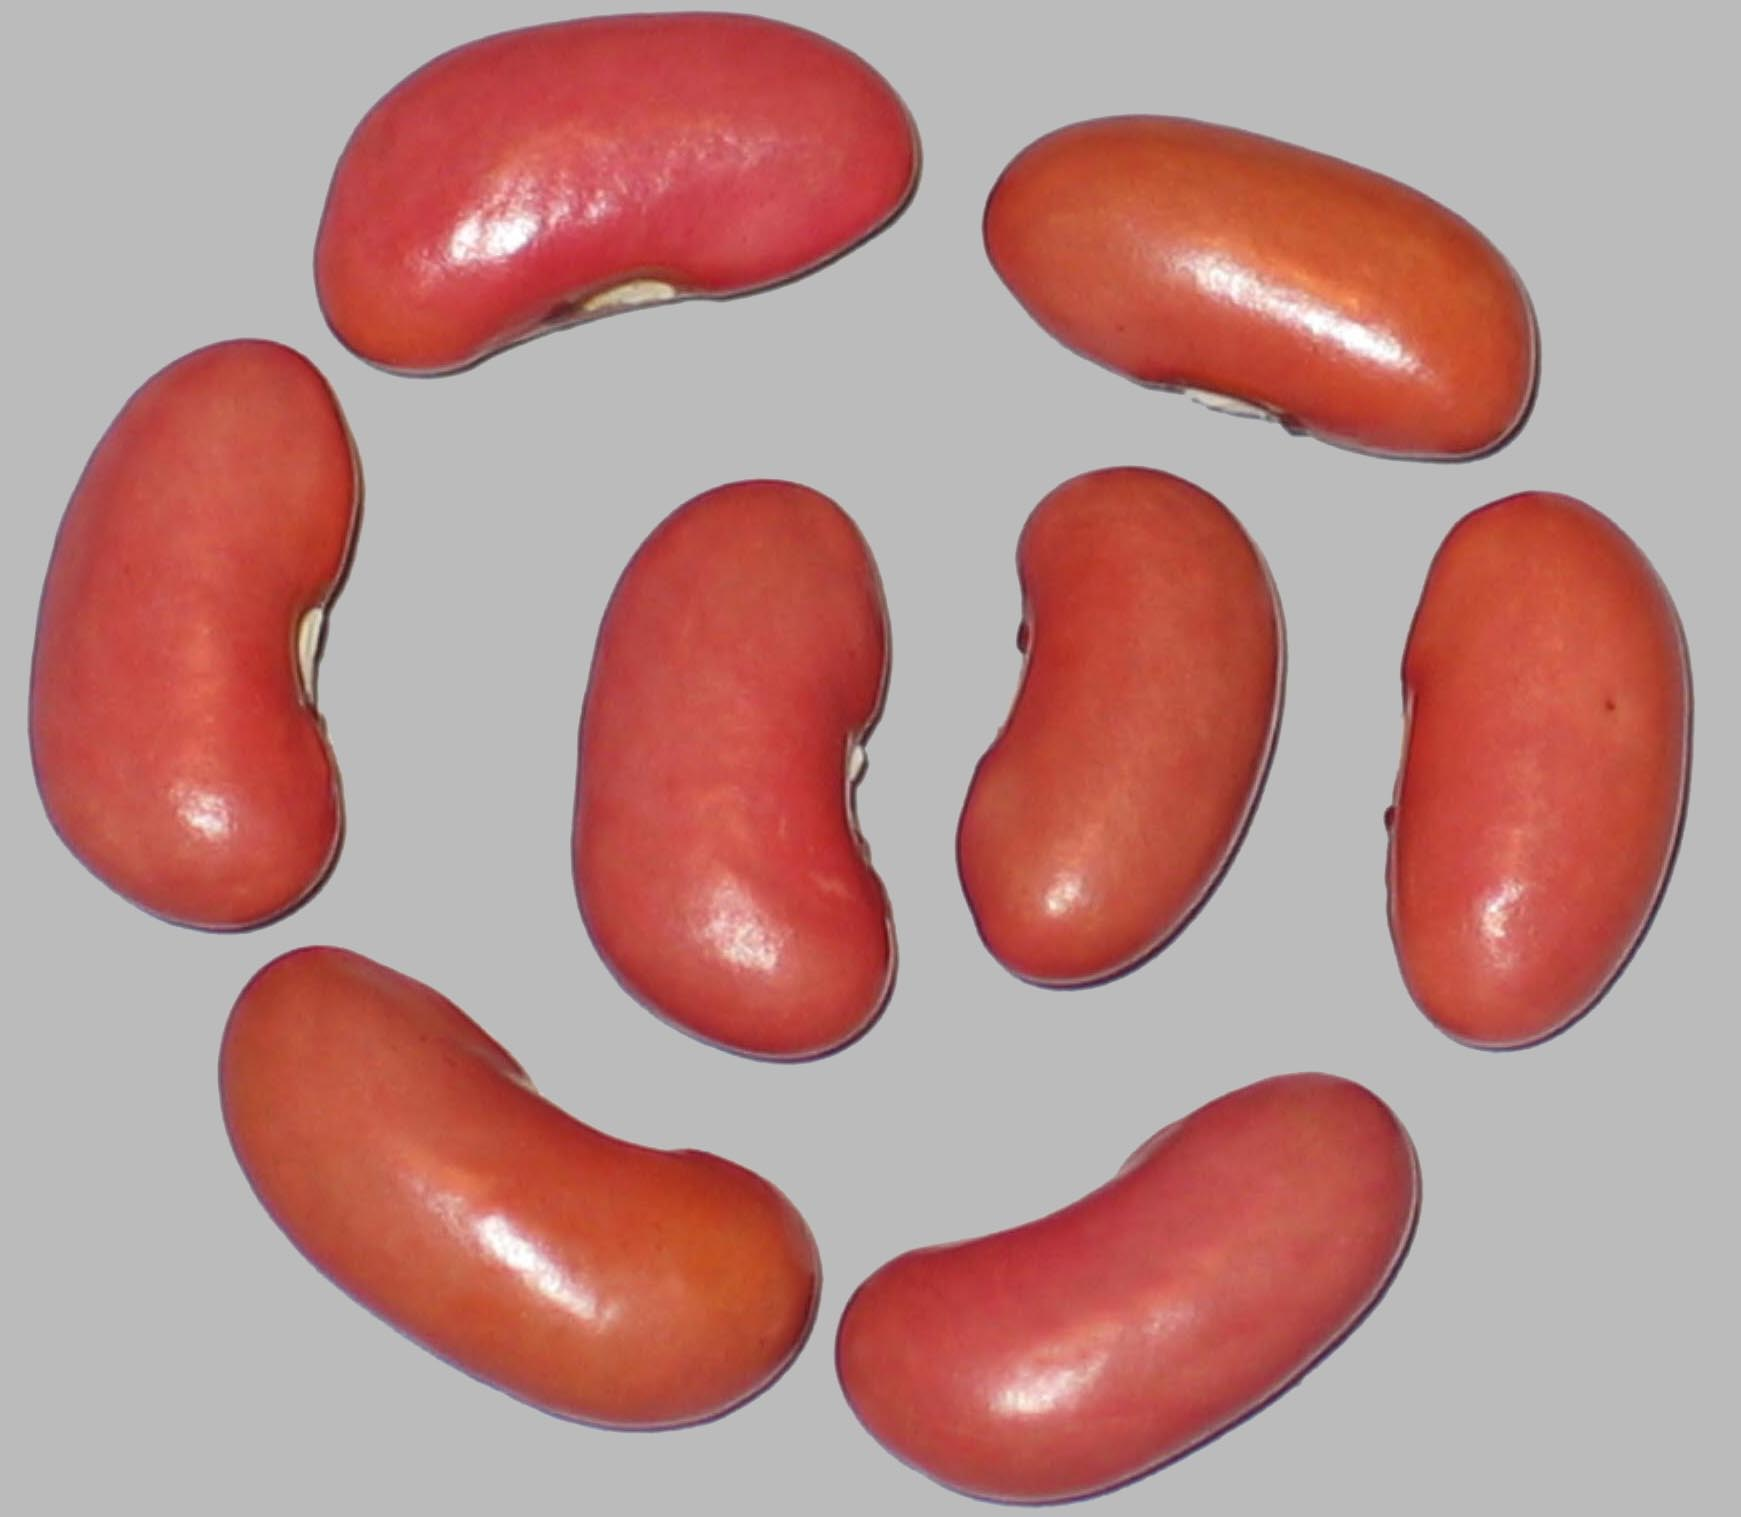 image of Theresa's Pink Portugal beans